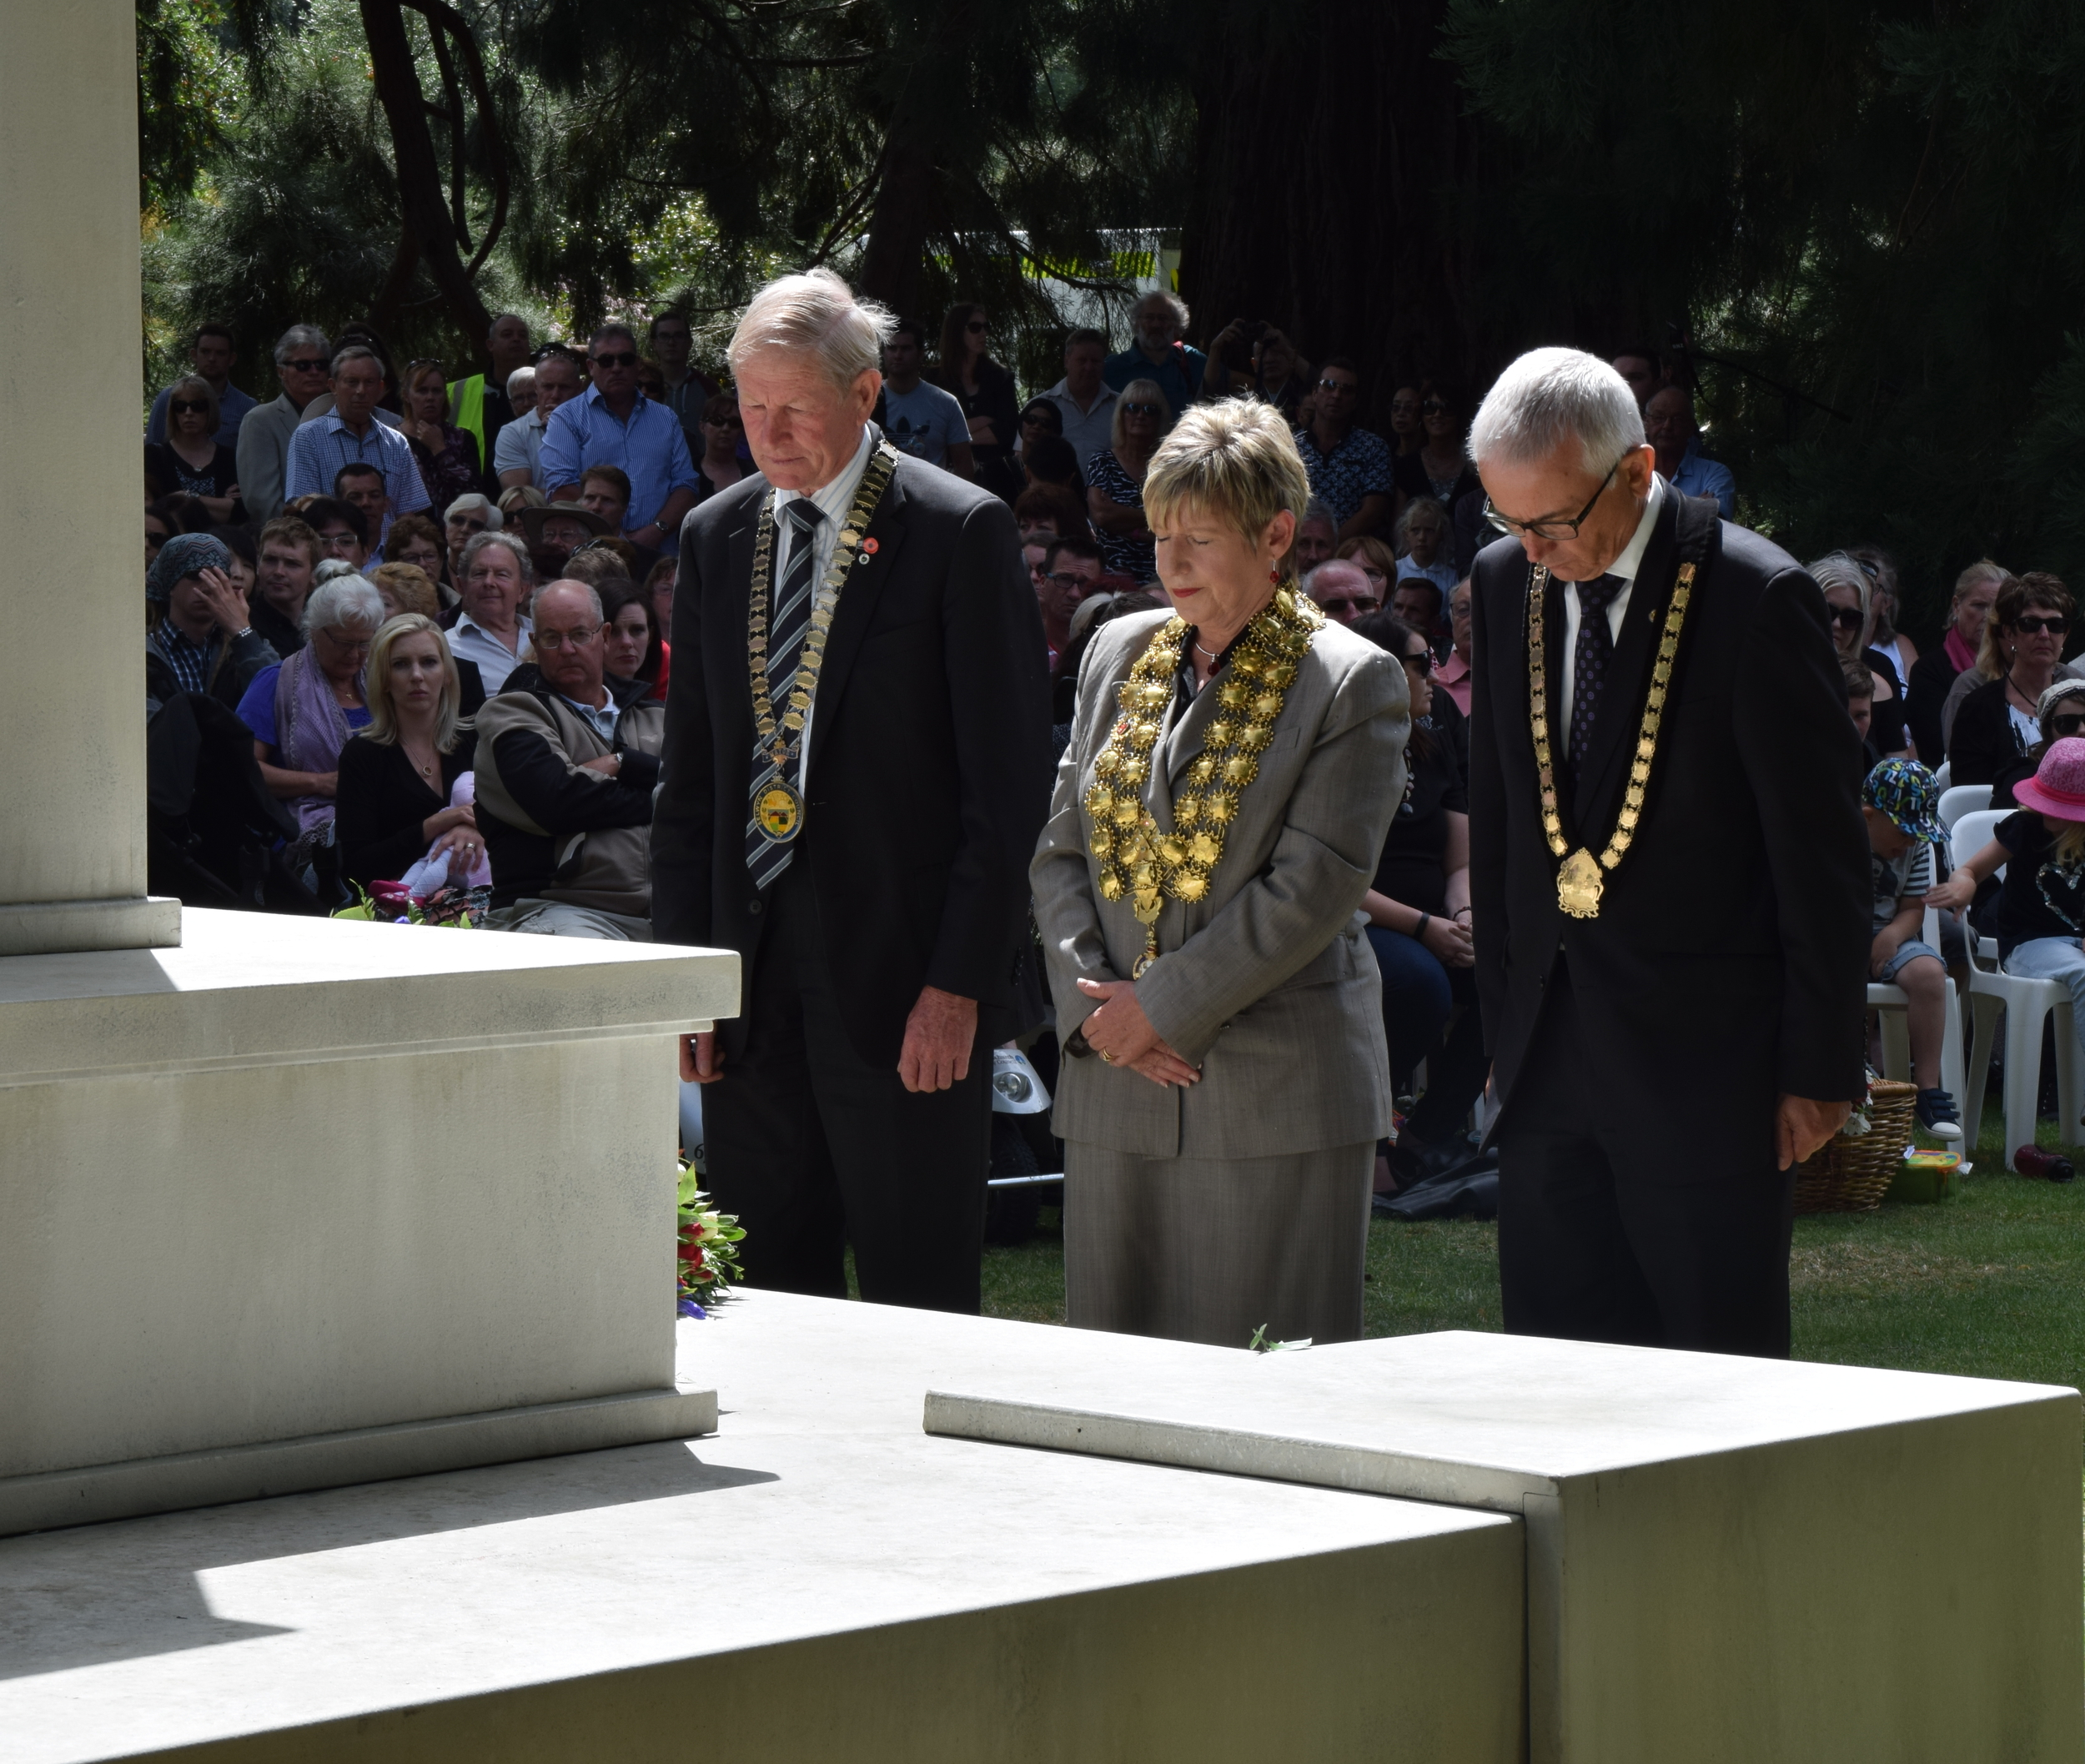 Lianne Dalziel, Mayor of Christchurch, led the city residents in paying respects to the victims of 2011 tragedy